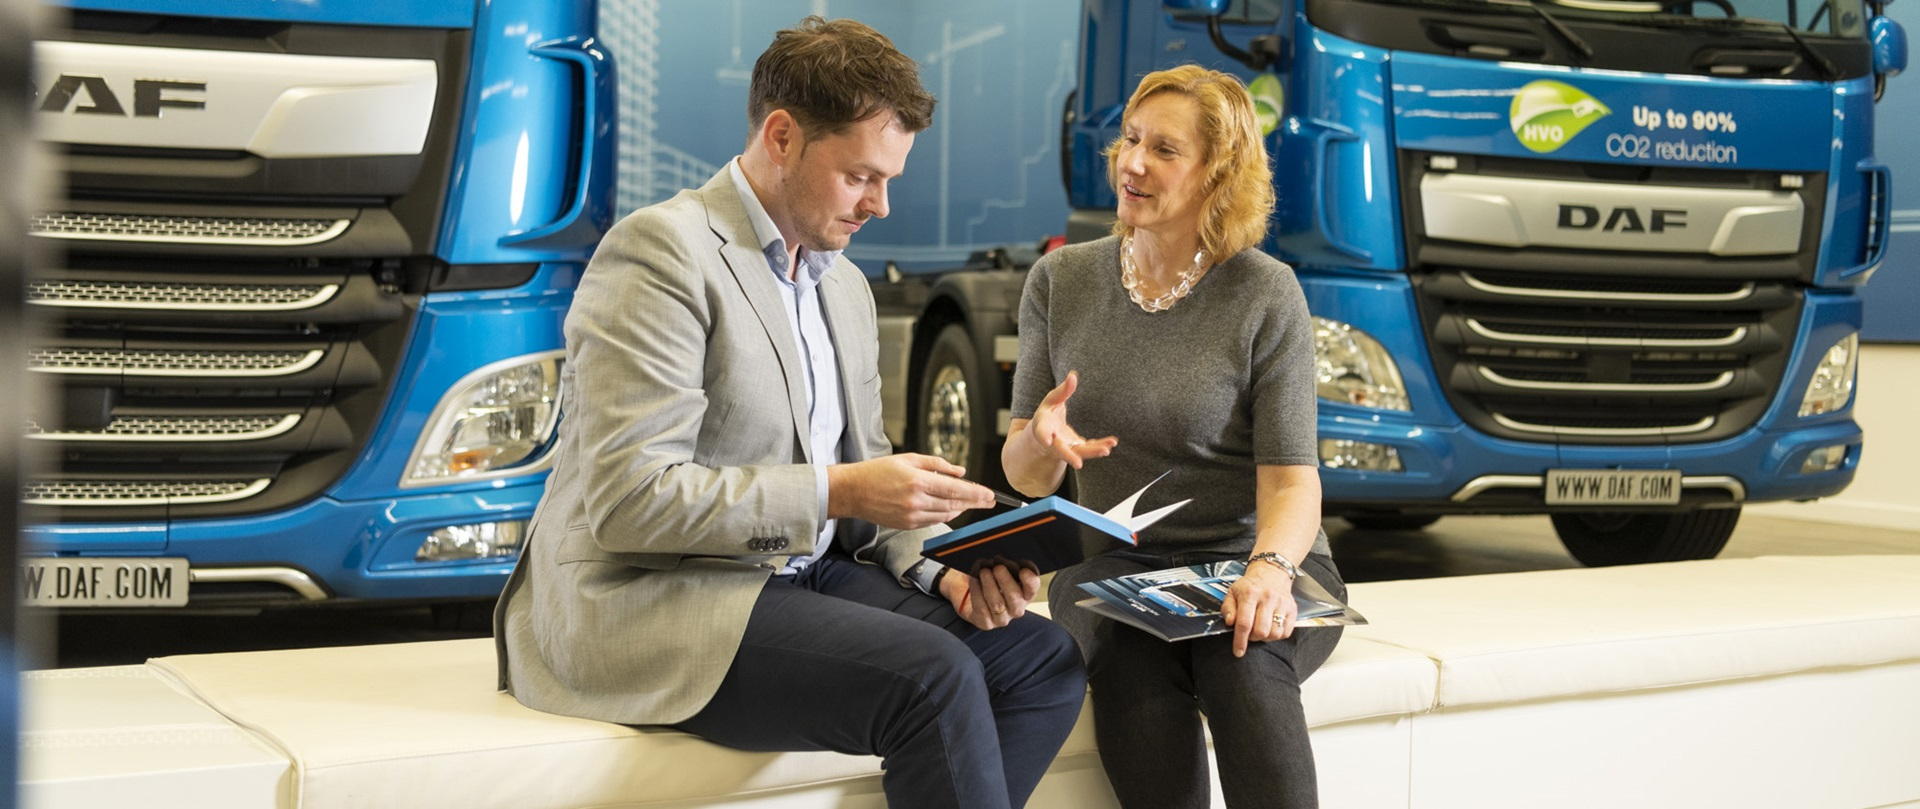 marketing-sales-working-daf